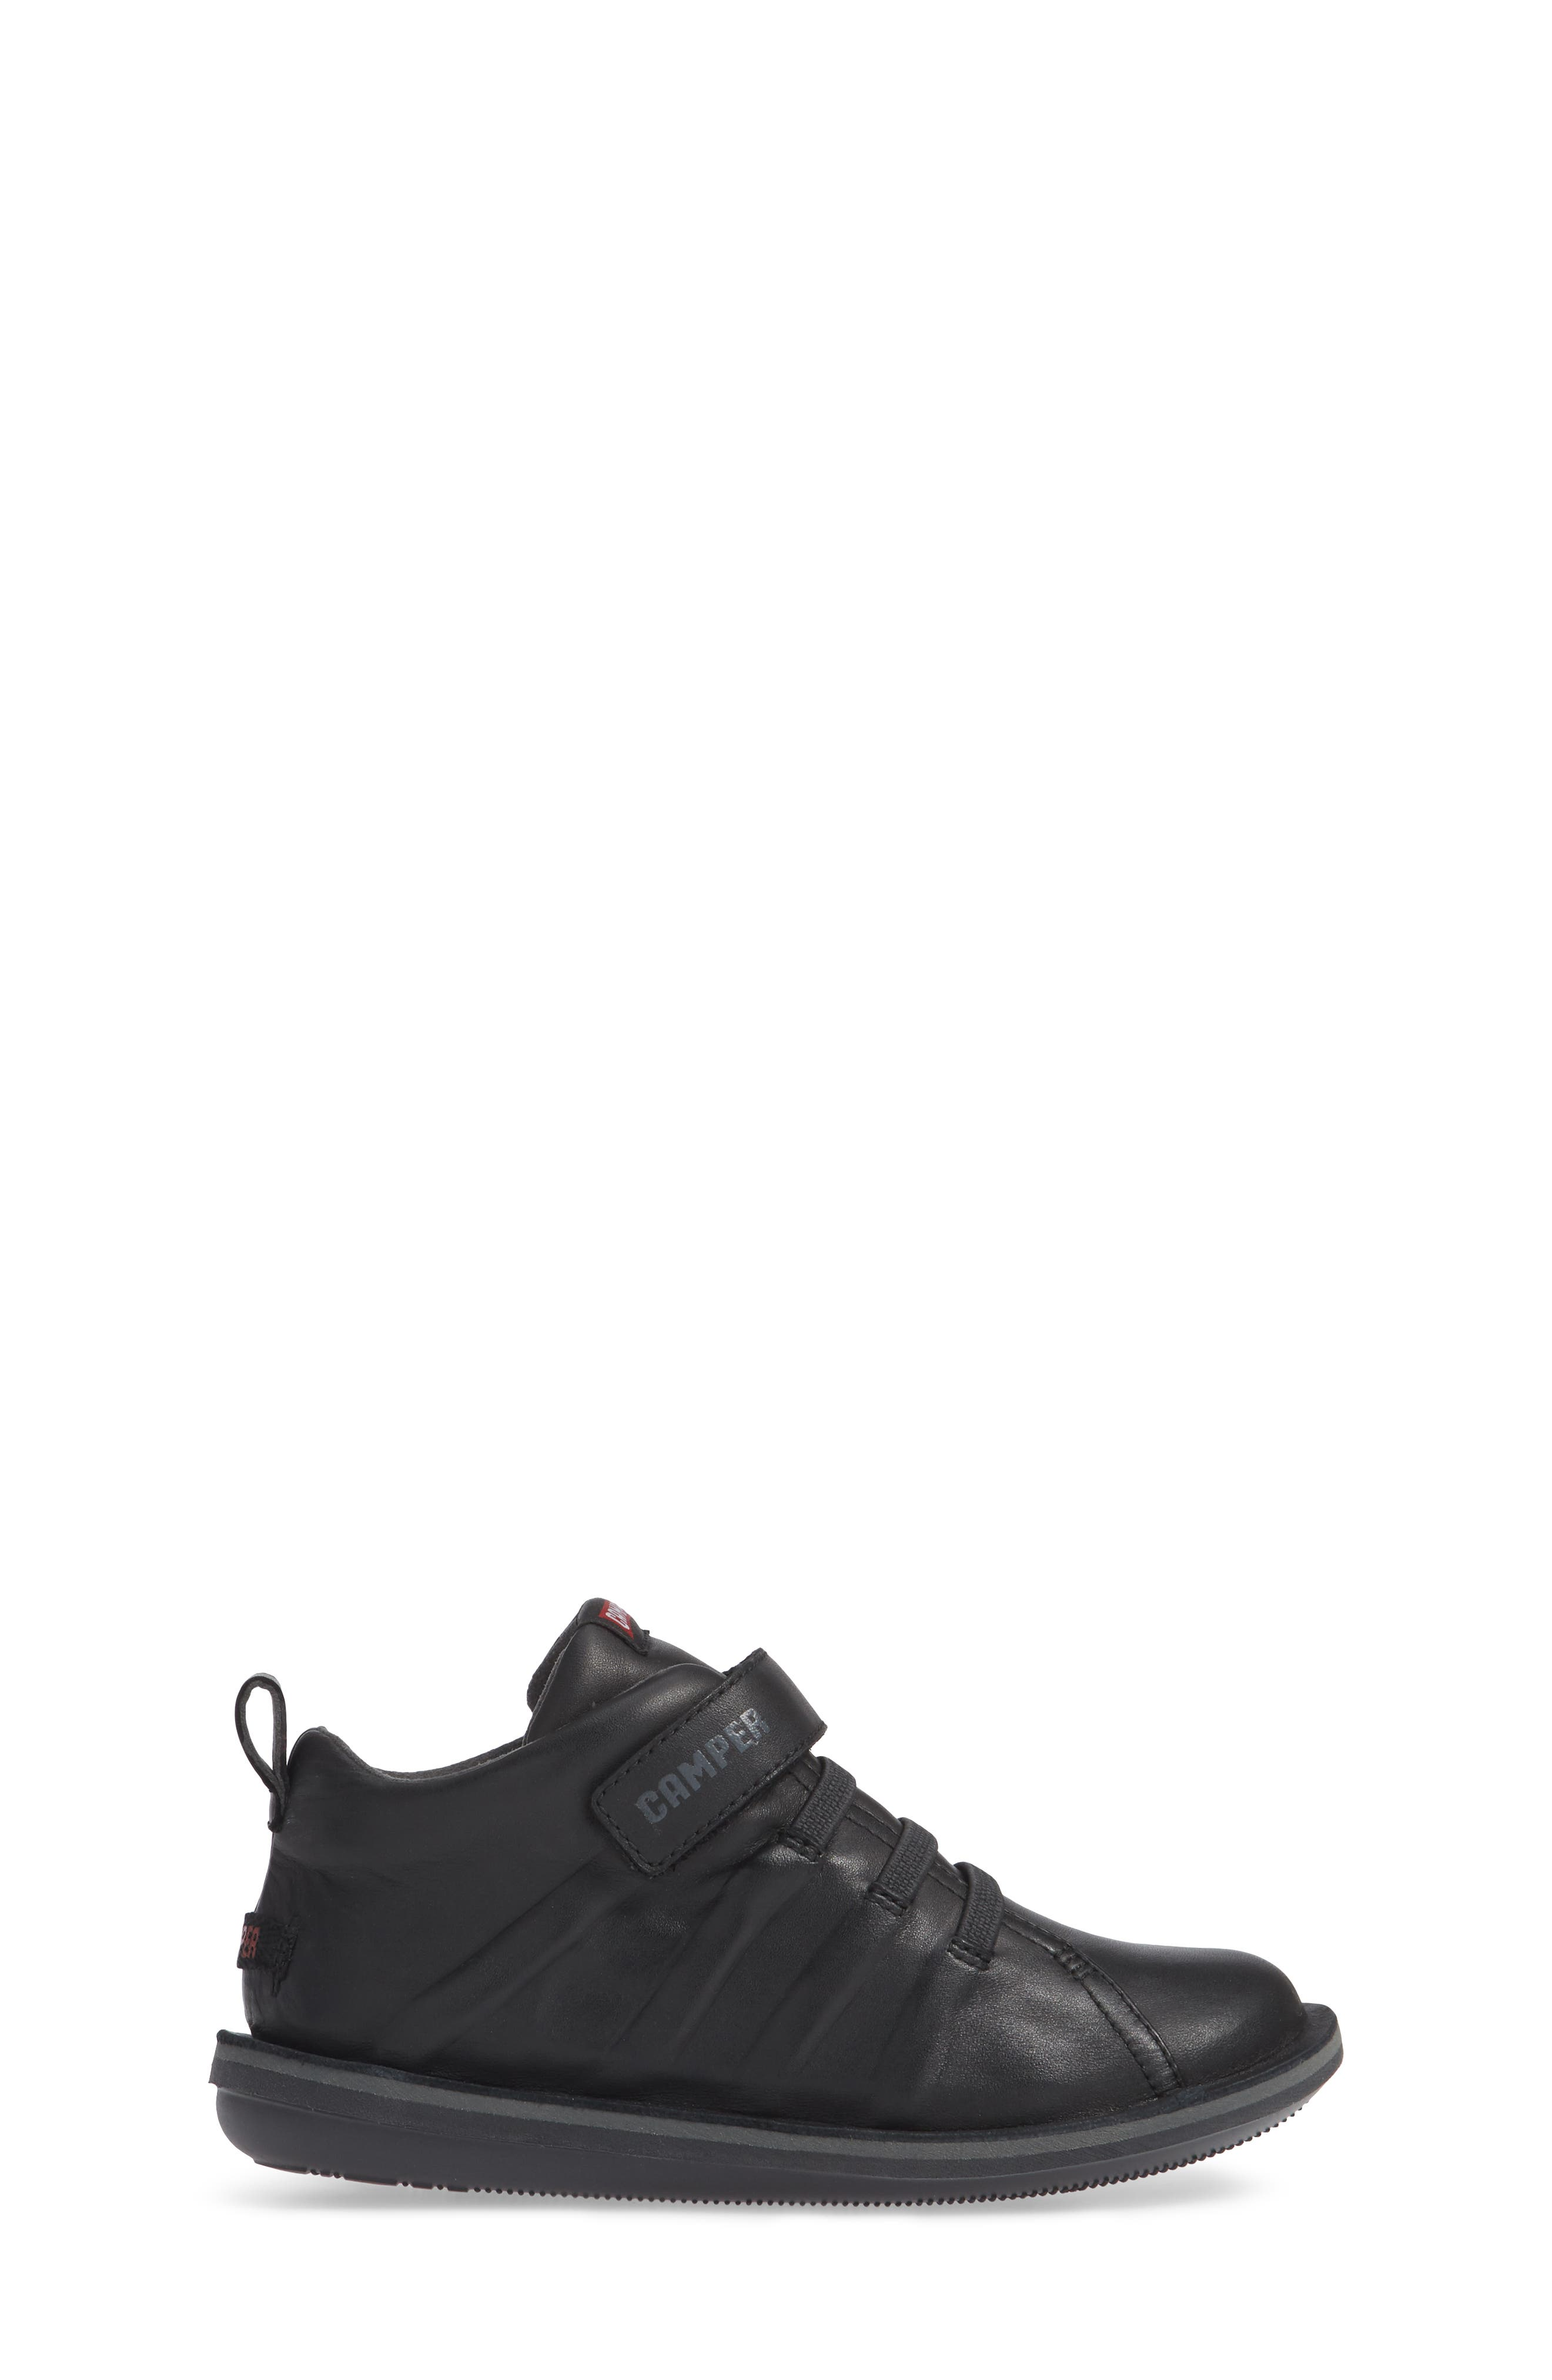 Beetle Water Resistant Sneaker,                             Alternate thumbnail 3, color,                             BLACK